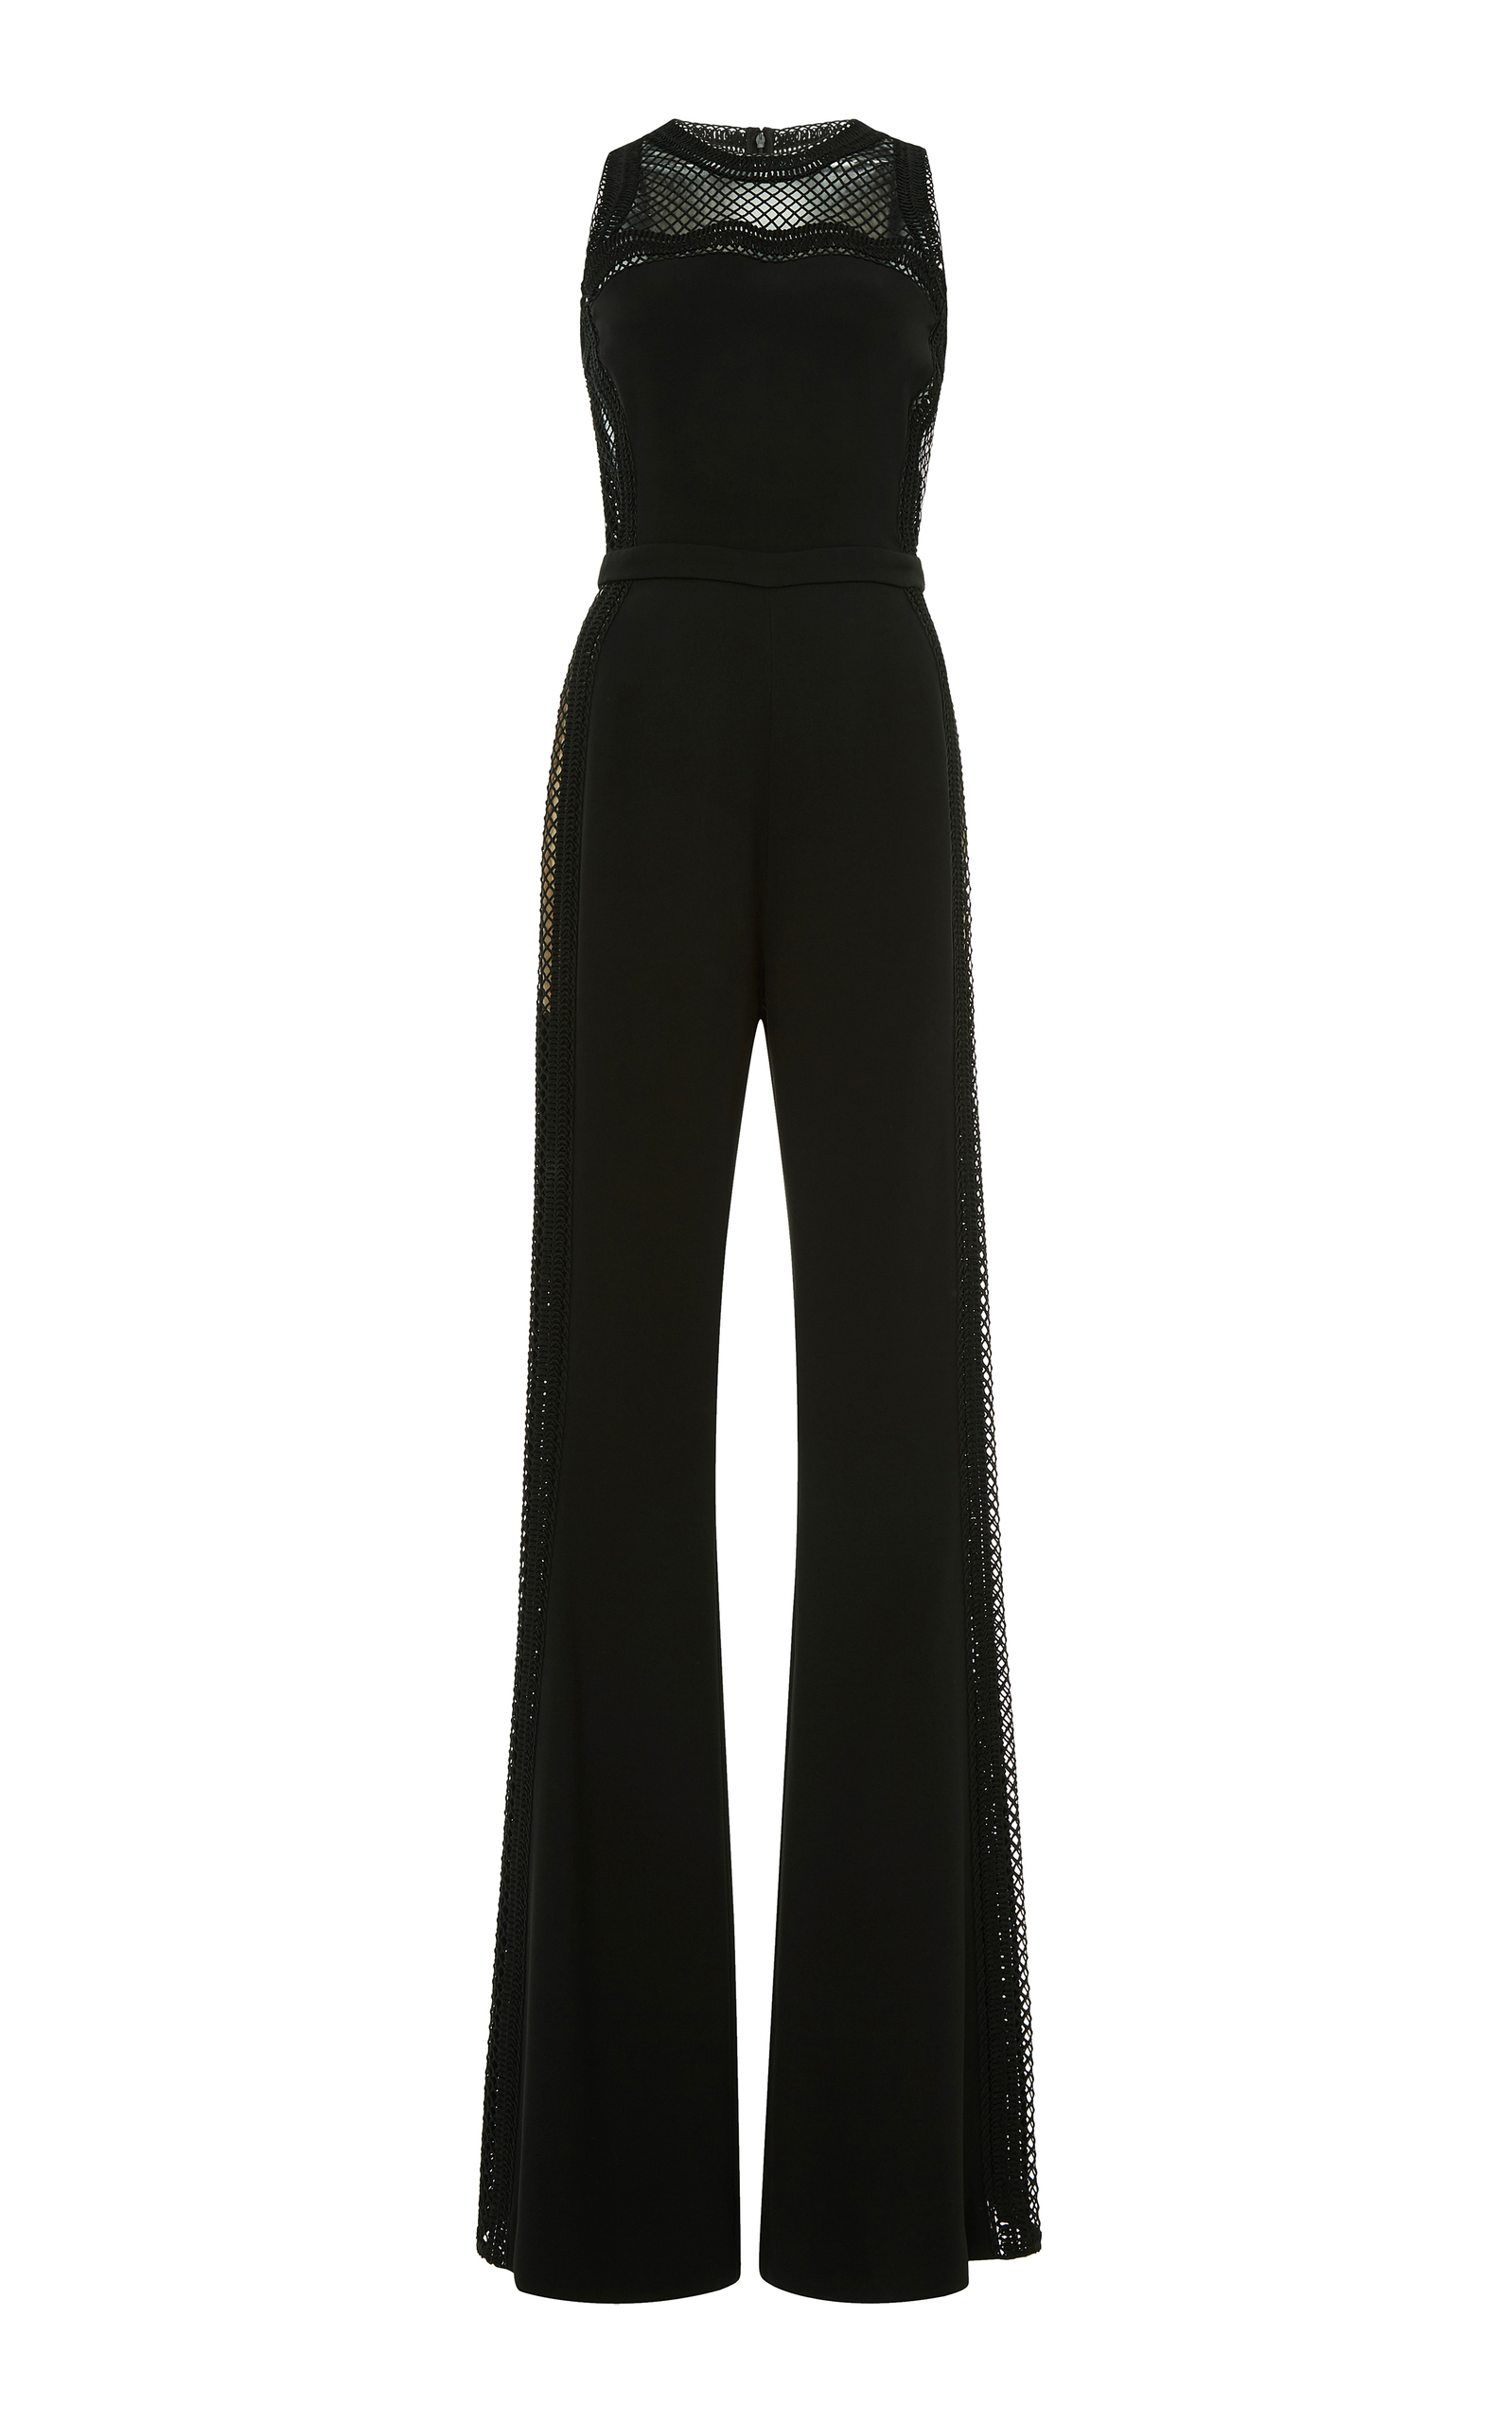 Elie Saab macrame jumpsuit Discount Really Explore Clearance Really Cheap Looking For P2jPP1